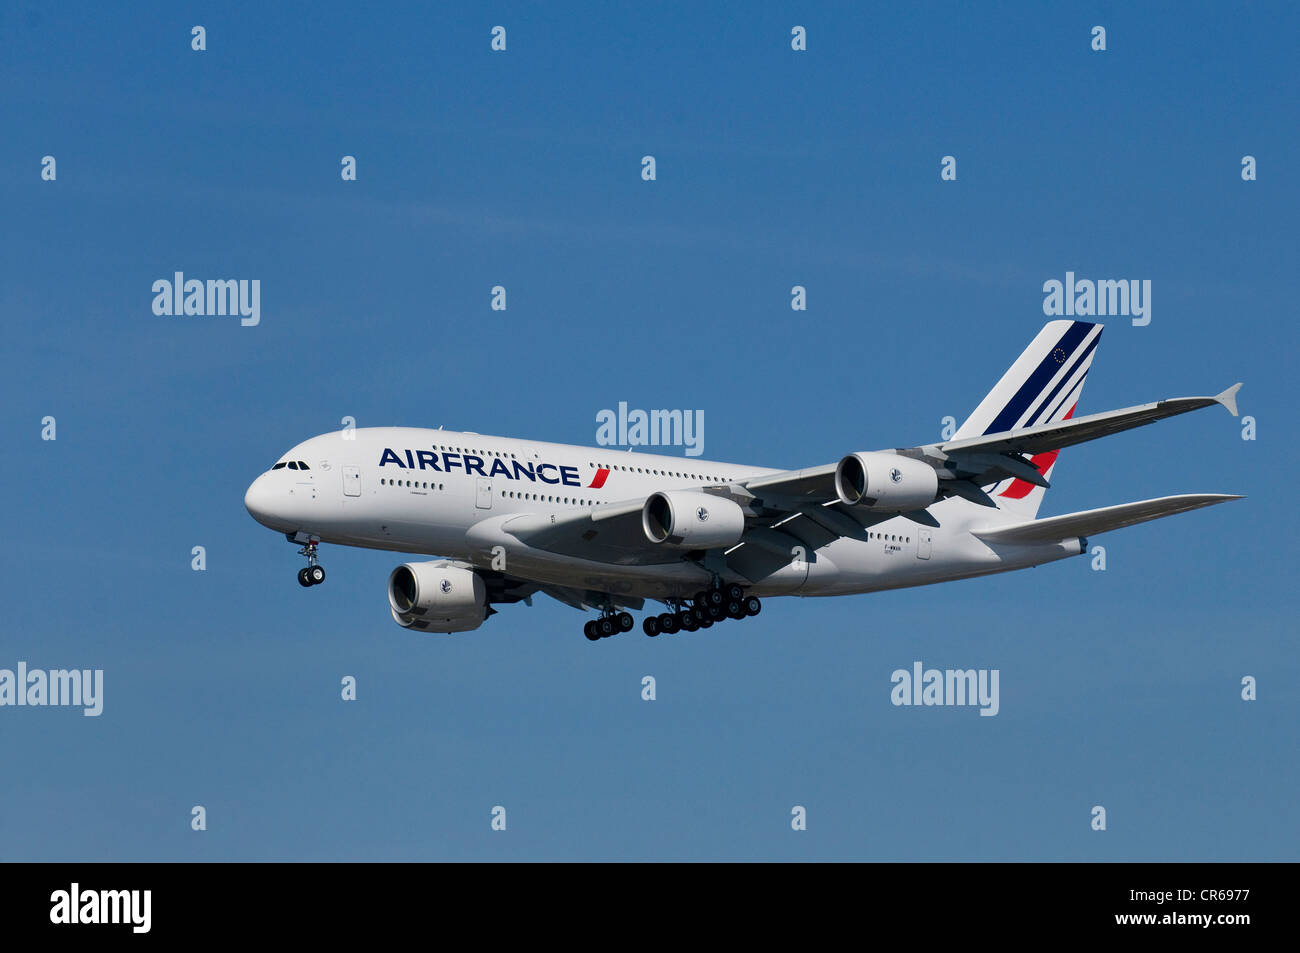 Air France passenger plane in flight with extended landing gear, Airbus A 380 super jumbo - Stock Image